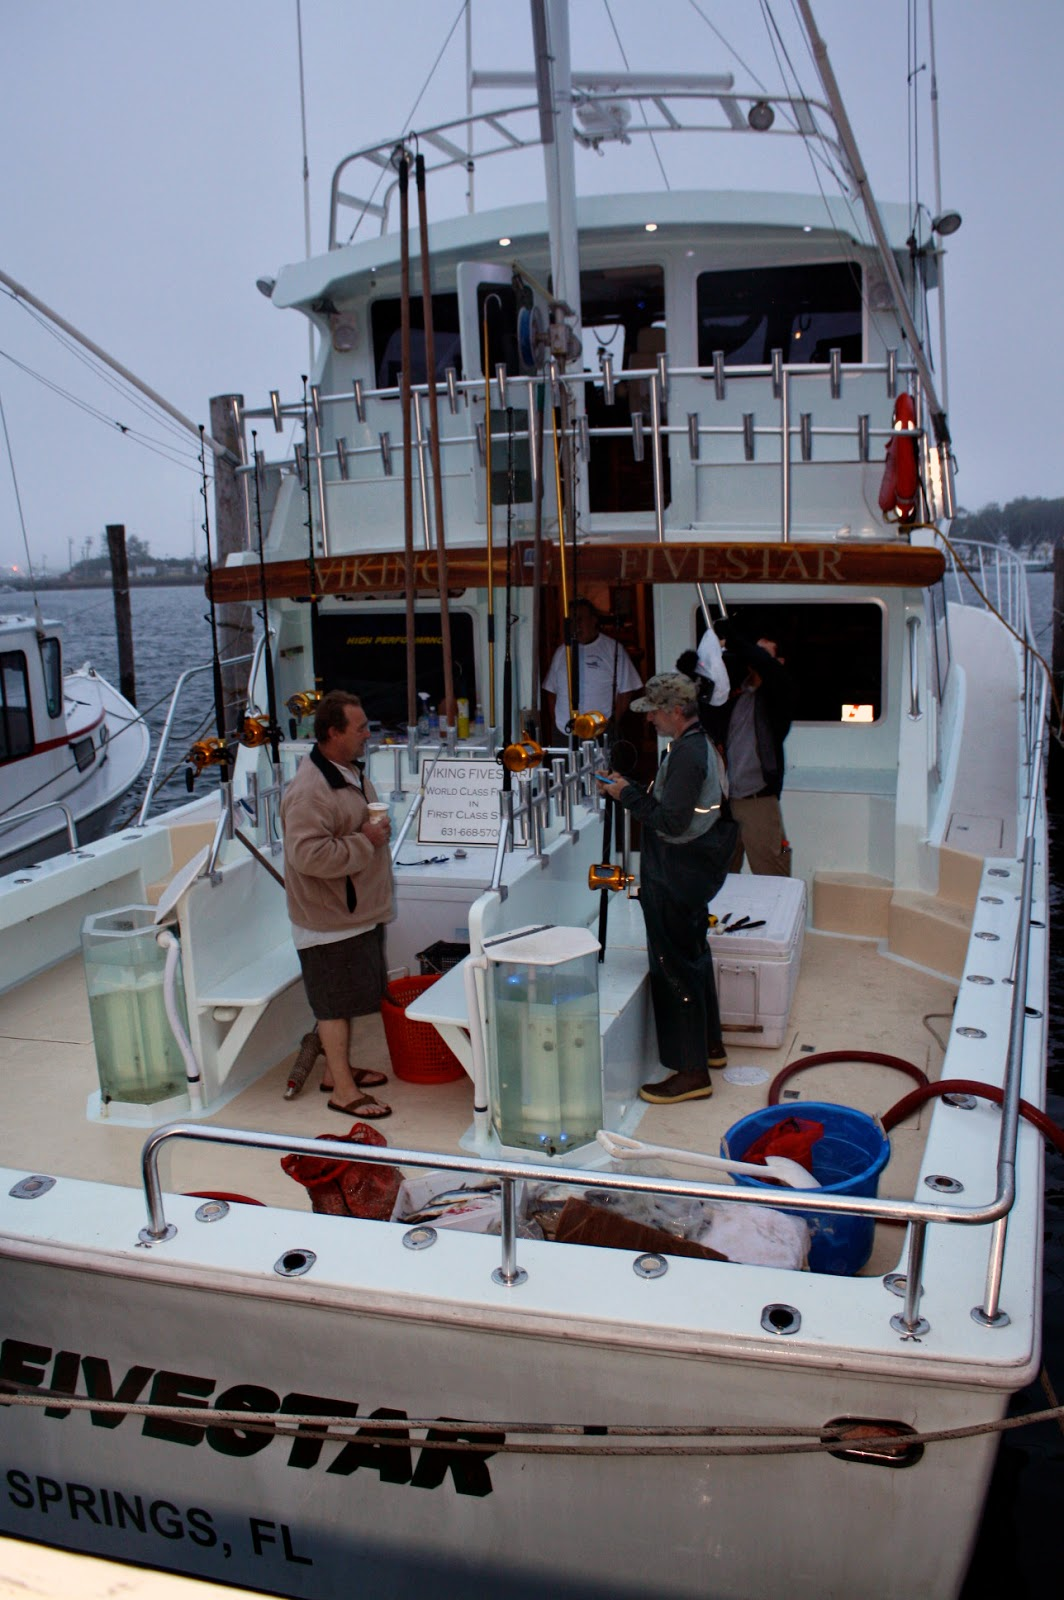 Viking fivestar fishing report june 2014 for Viking fishing report montauk